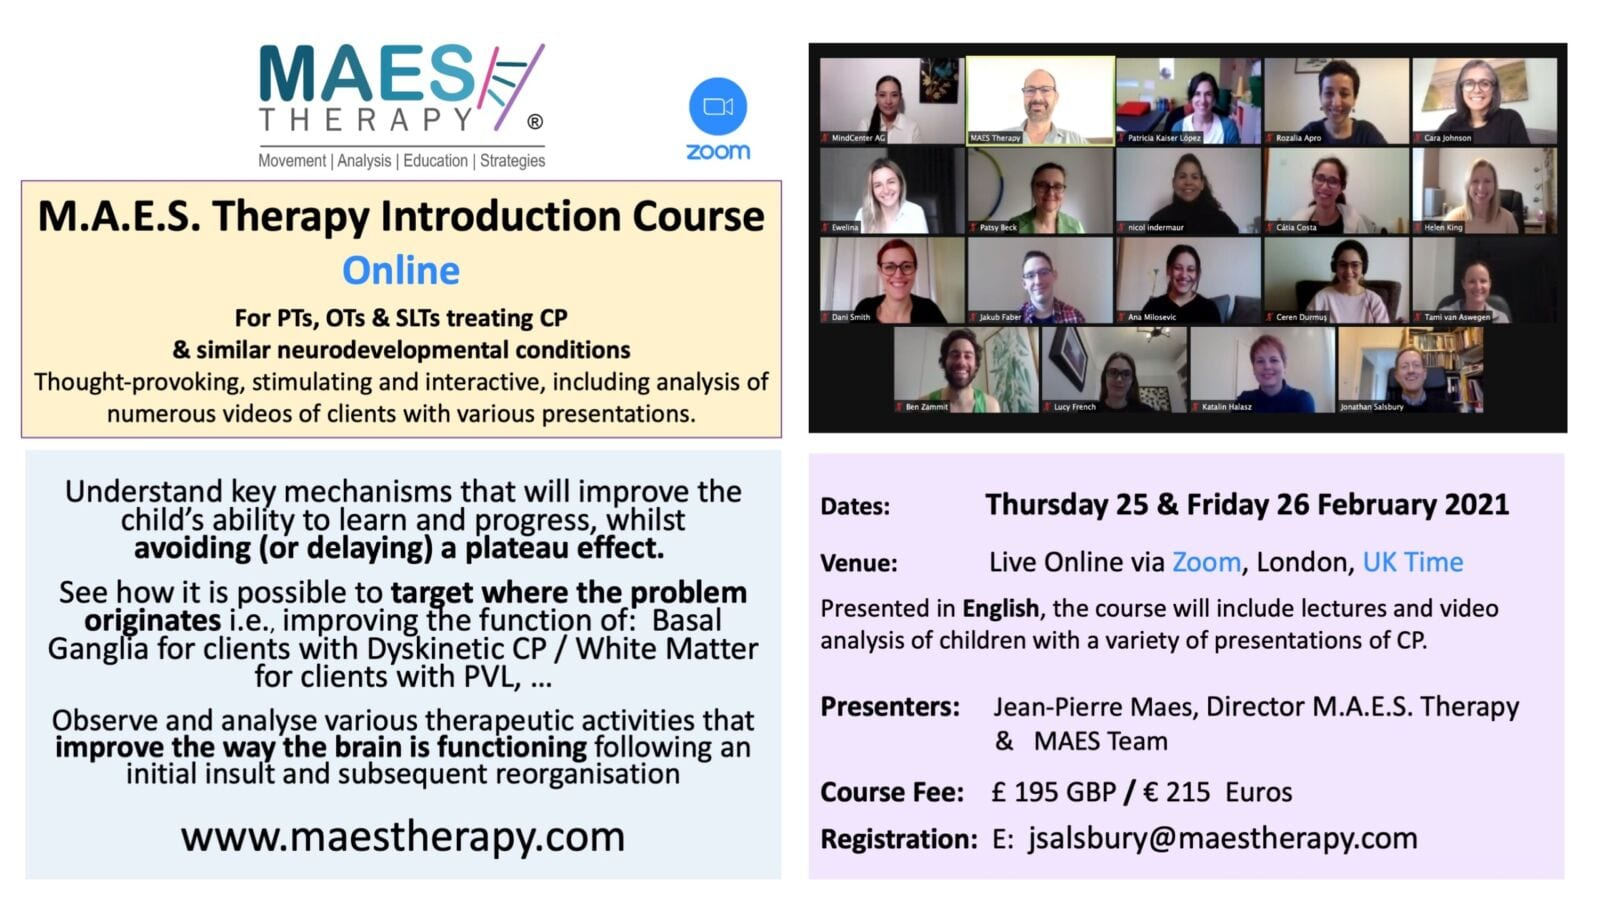 MAES Therapy Introduction Course - London 25-26 Feb.2021 for Paediatric Therapists treating children with CP